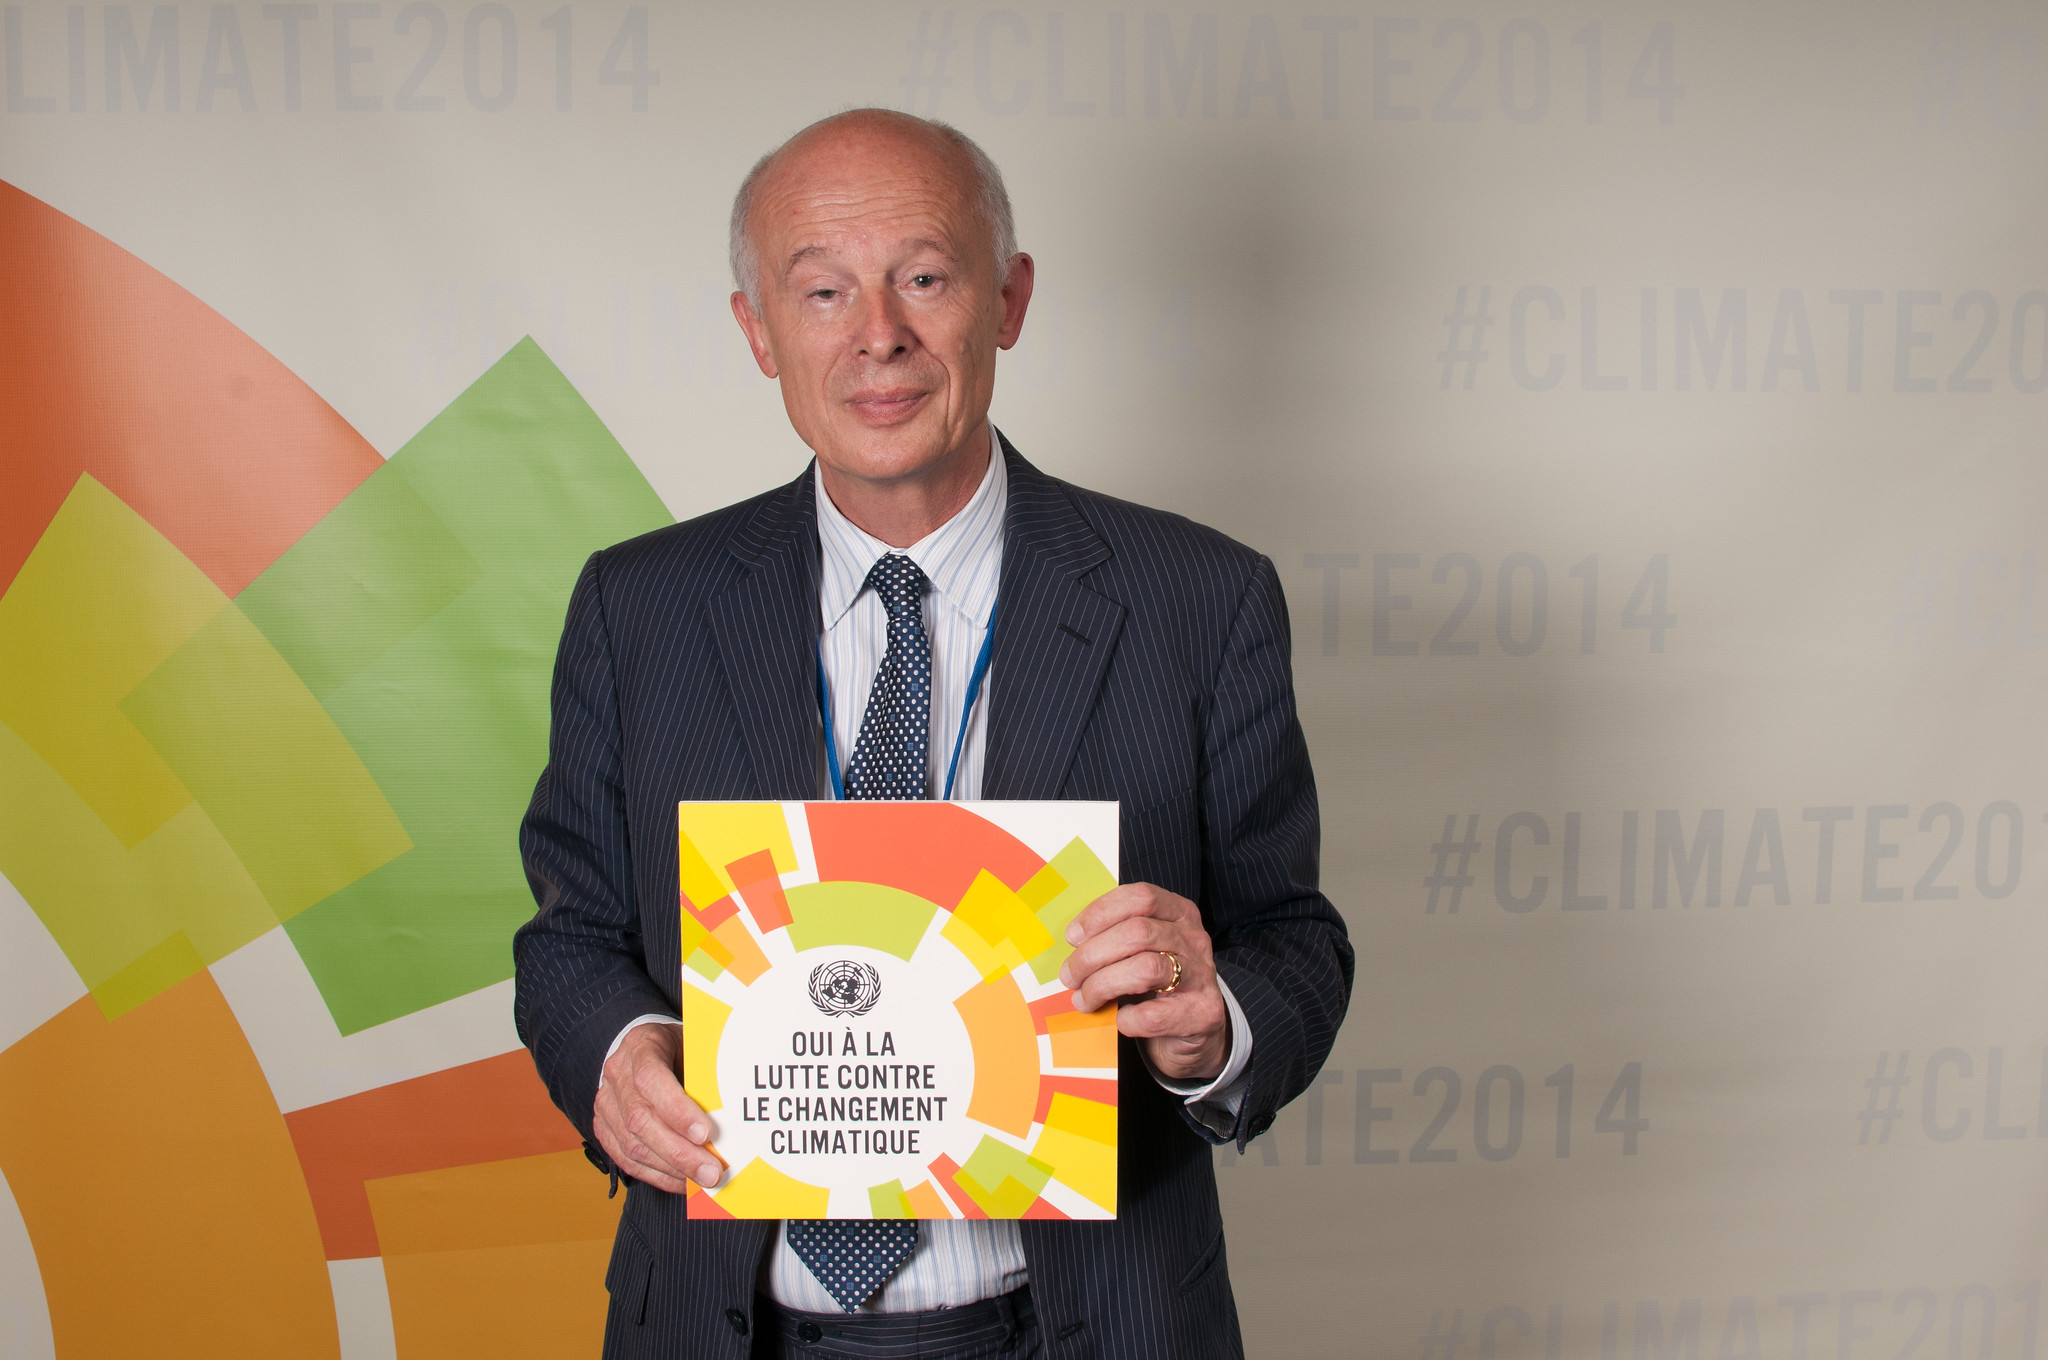 For Prof. Schellnhuber, climate change cuts across all of Europe's future challenges. Image credit - Simon Ruf / UN Social Media Team